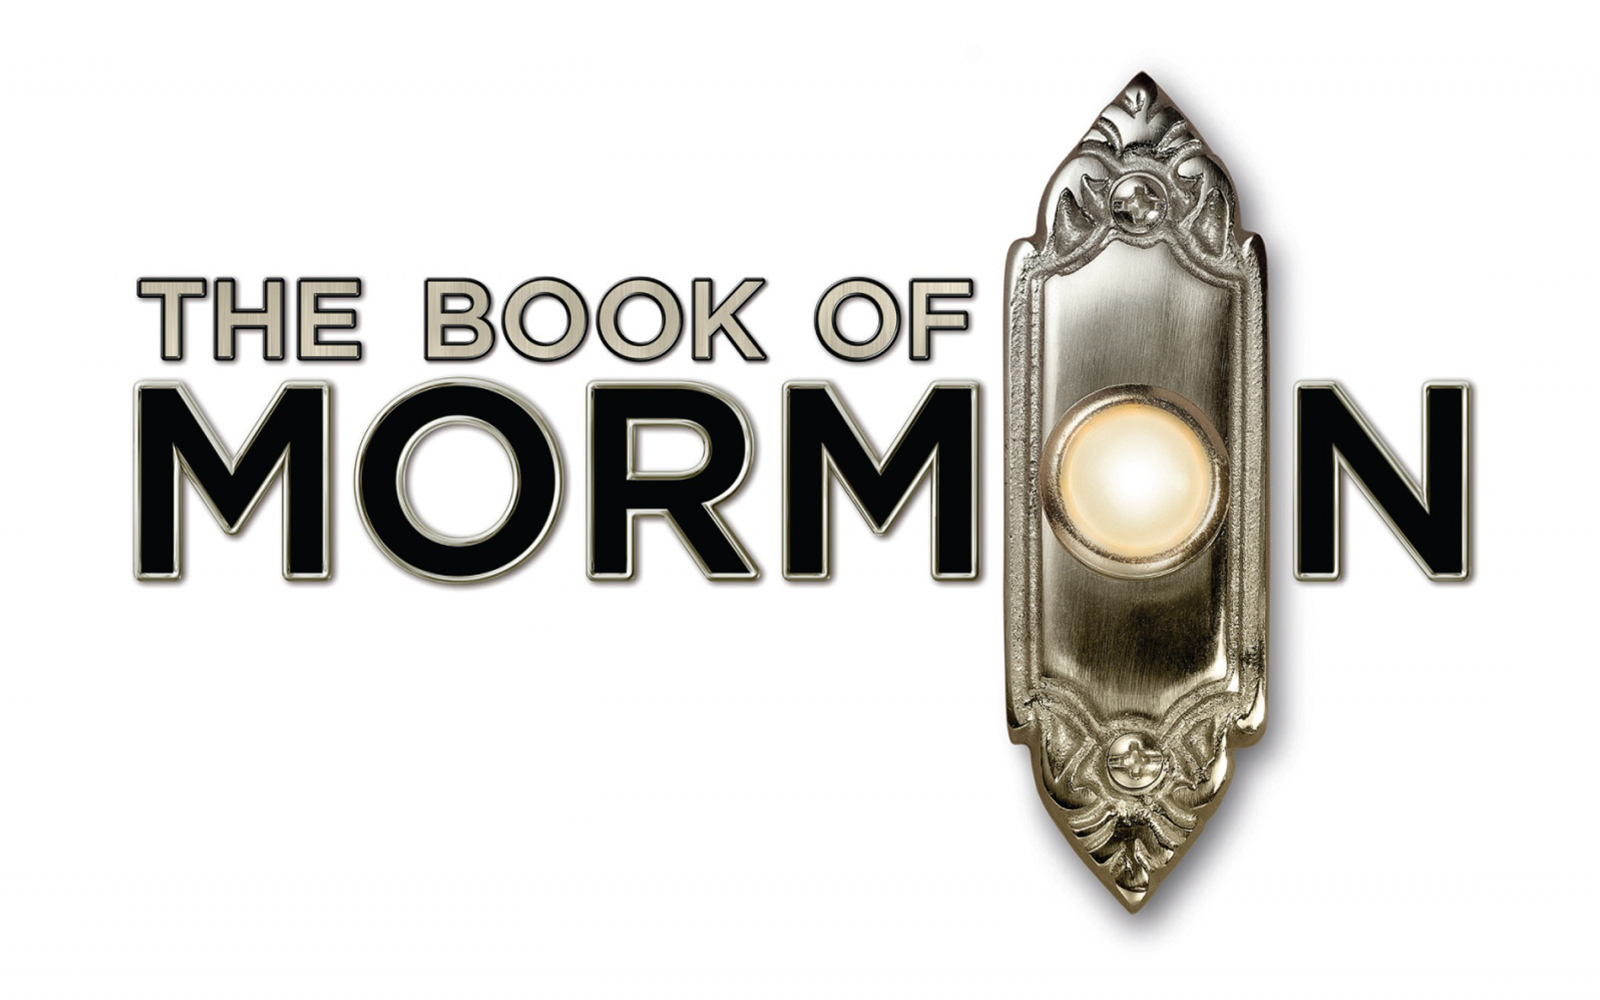 2b3ed7e5 8e67 4256 b2a1 d22b4038da82 2843 london the book of mormon 01